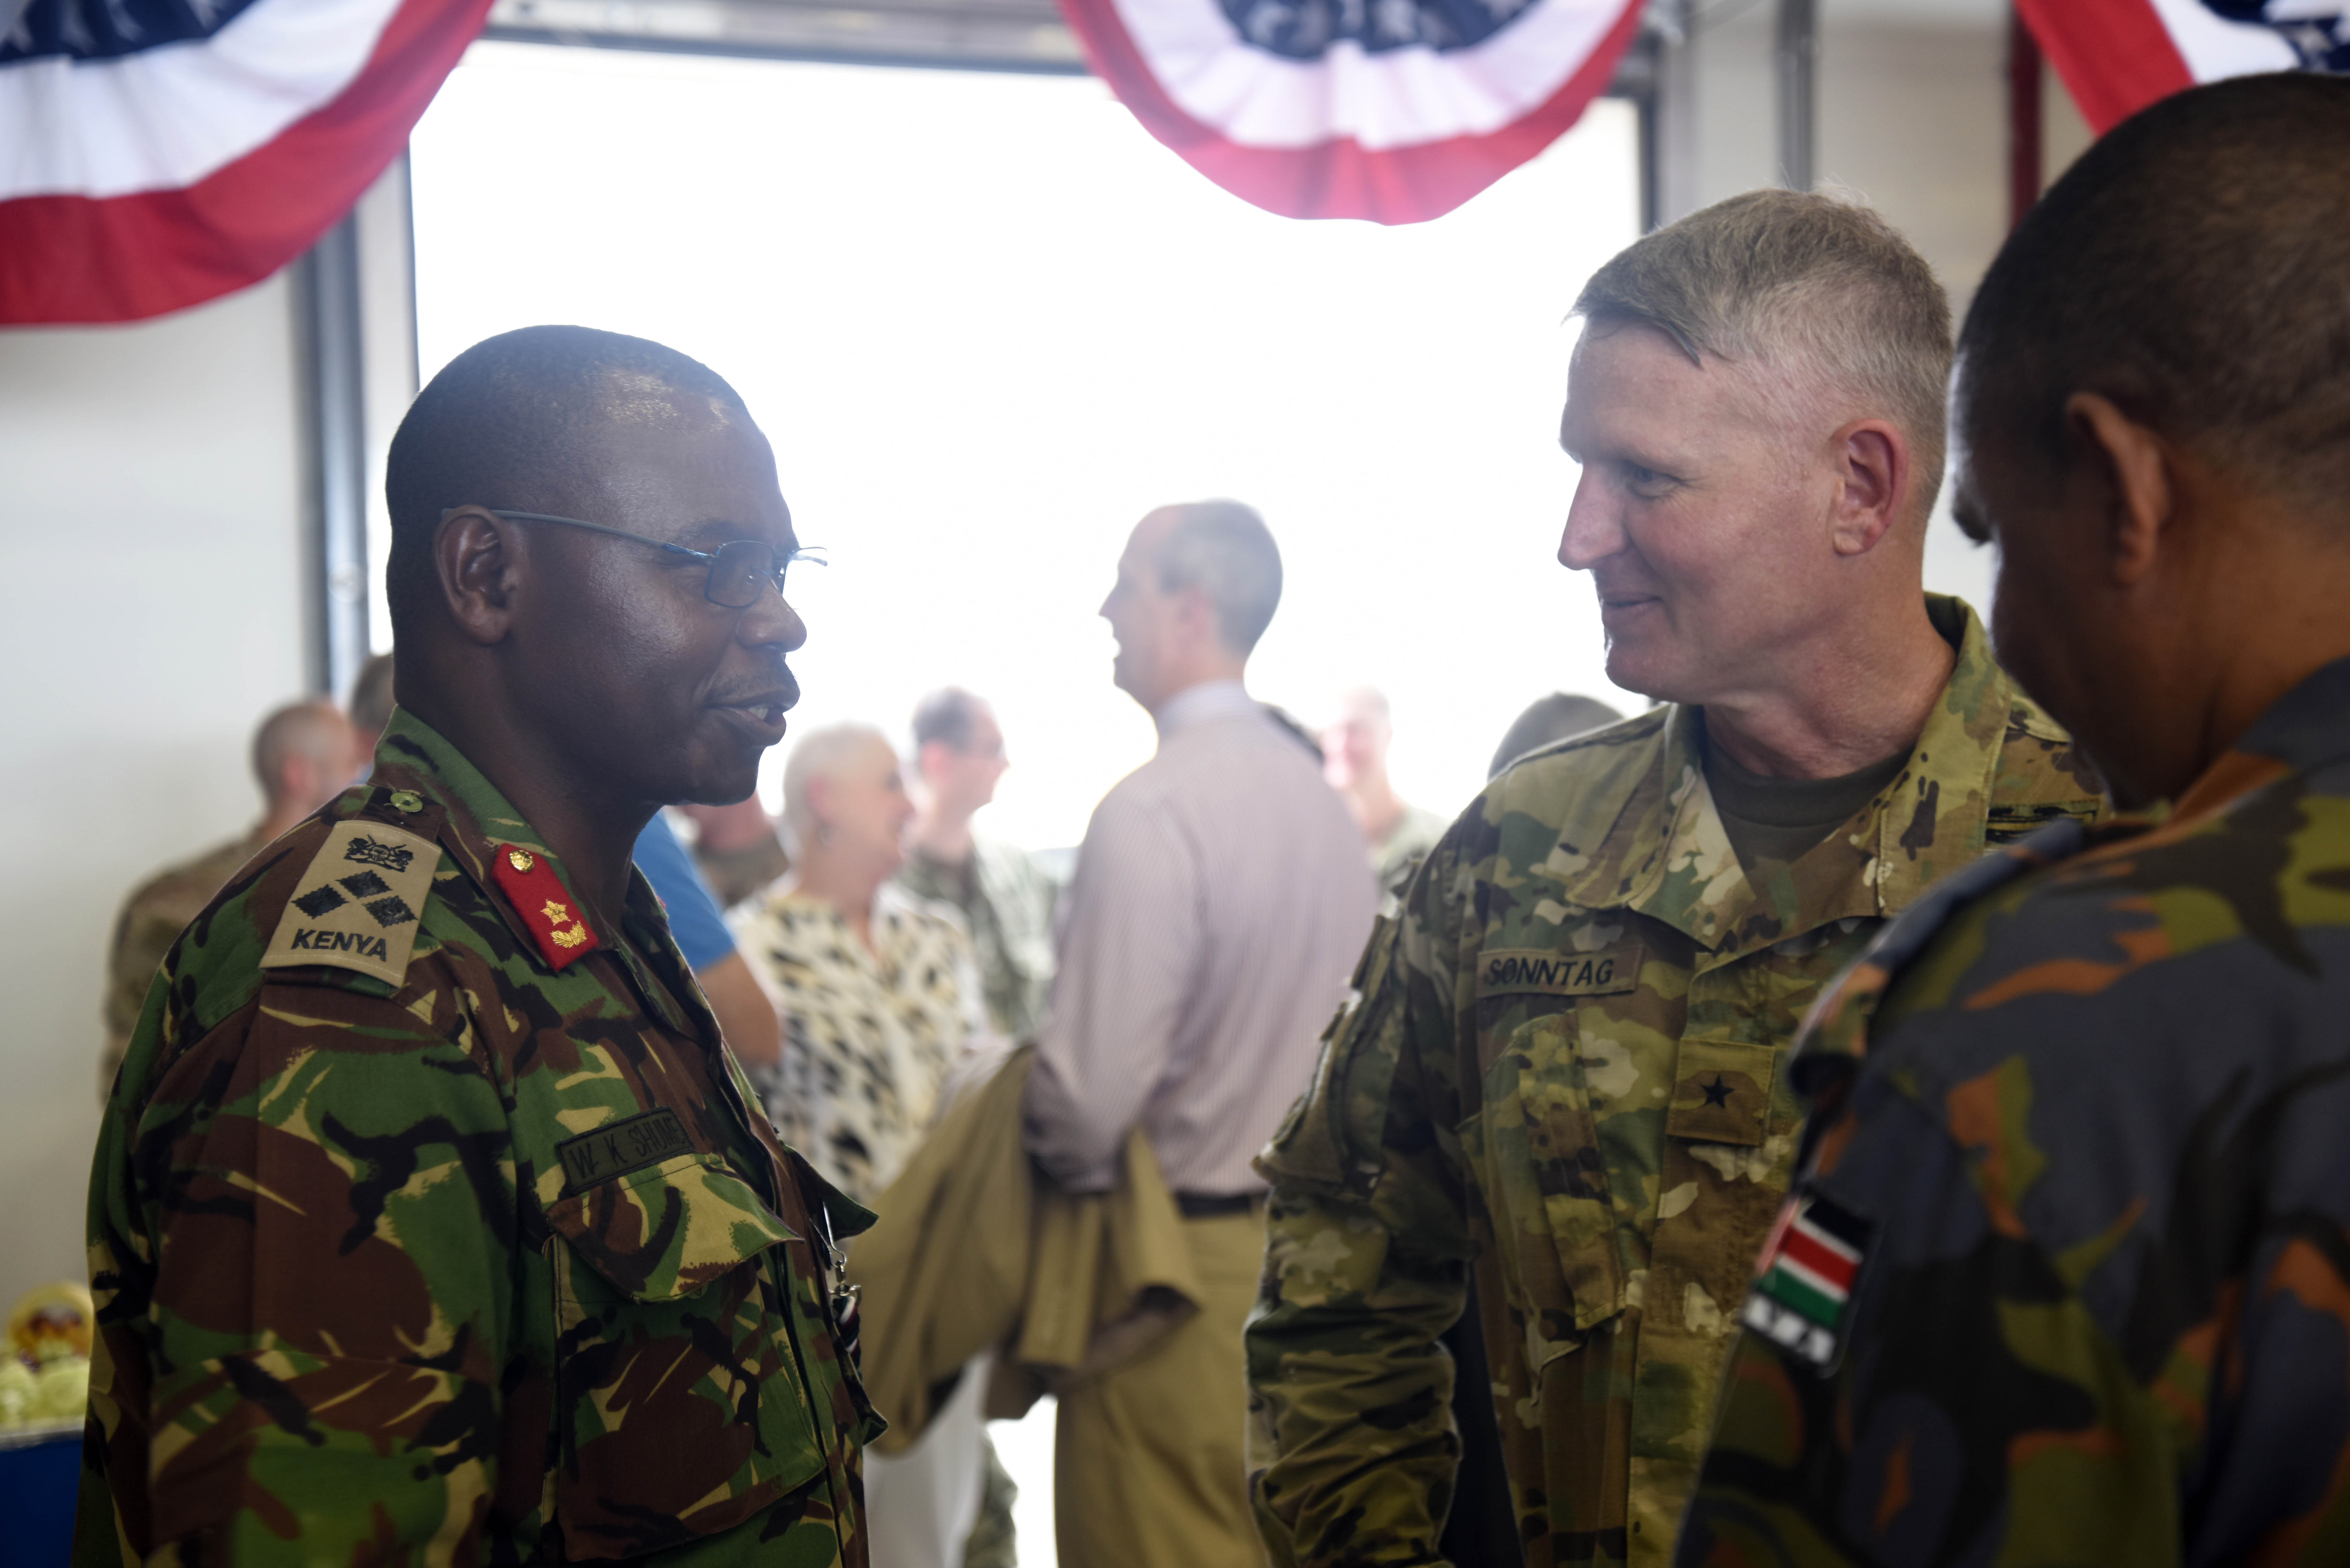 U.S. Army Brig. Gen. Kurt Sonntag, Combined Joint Task Force-Horn of Africa commanding general, meets partner-nation service members during a change of command ceremony post-reception April 13, 2016, at Camp Lemonnier, Djibouti. Service members, diplomats and multi-national guests attended the ceremony and met the new commander. (U.S. Air Force photo by Staff Sgt. Kate Thornton)